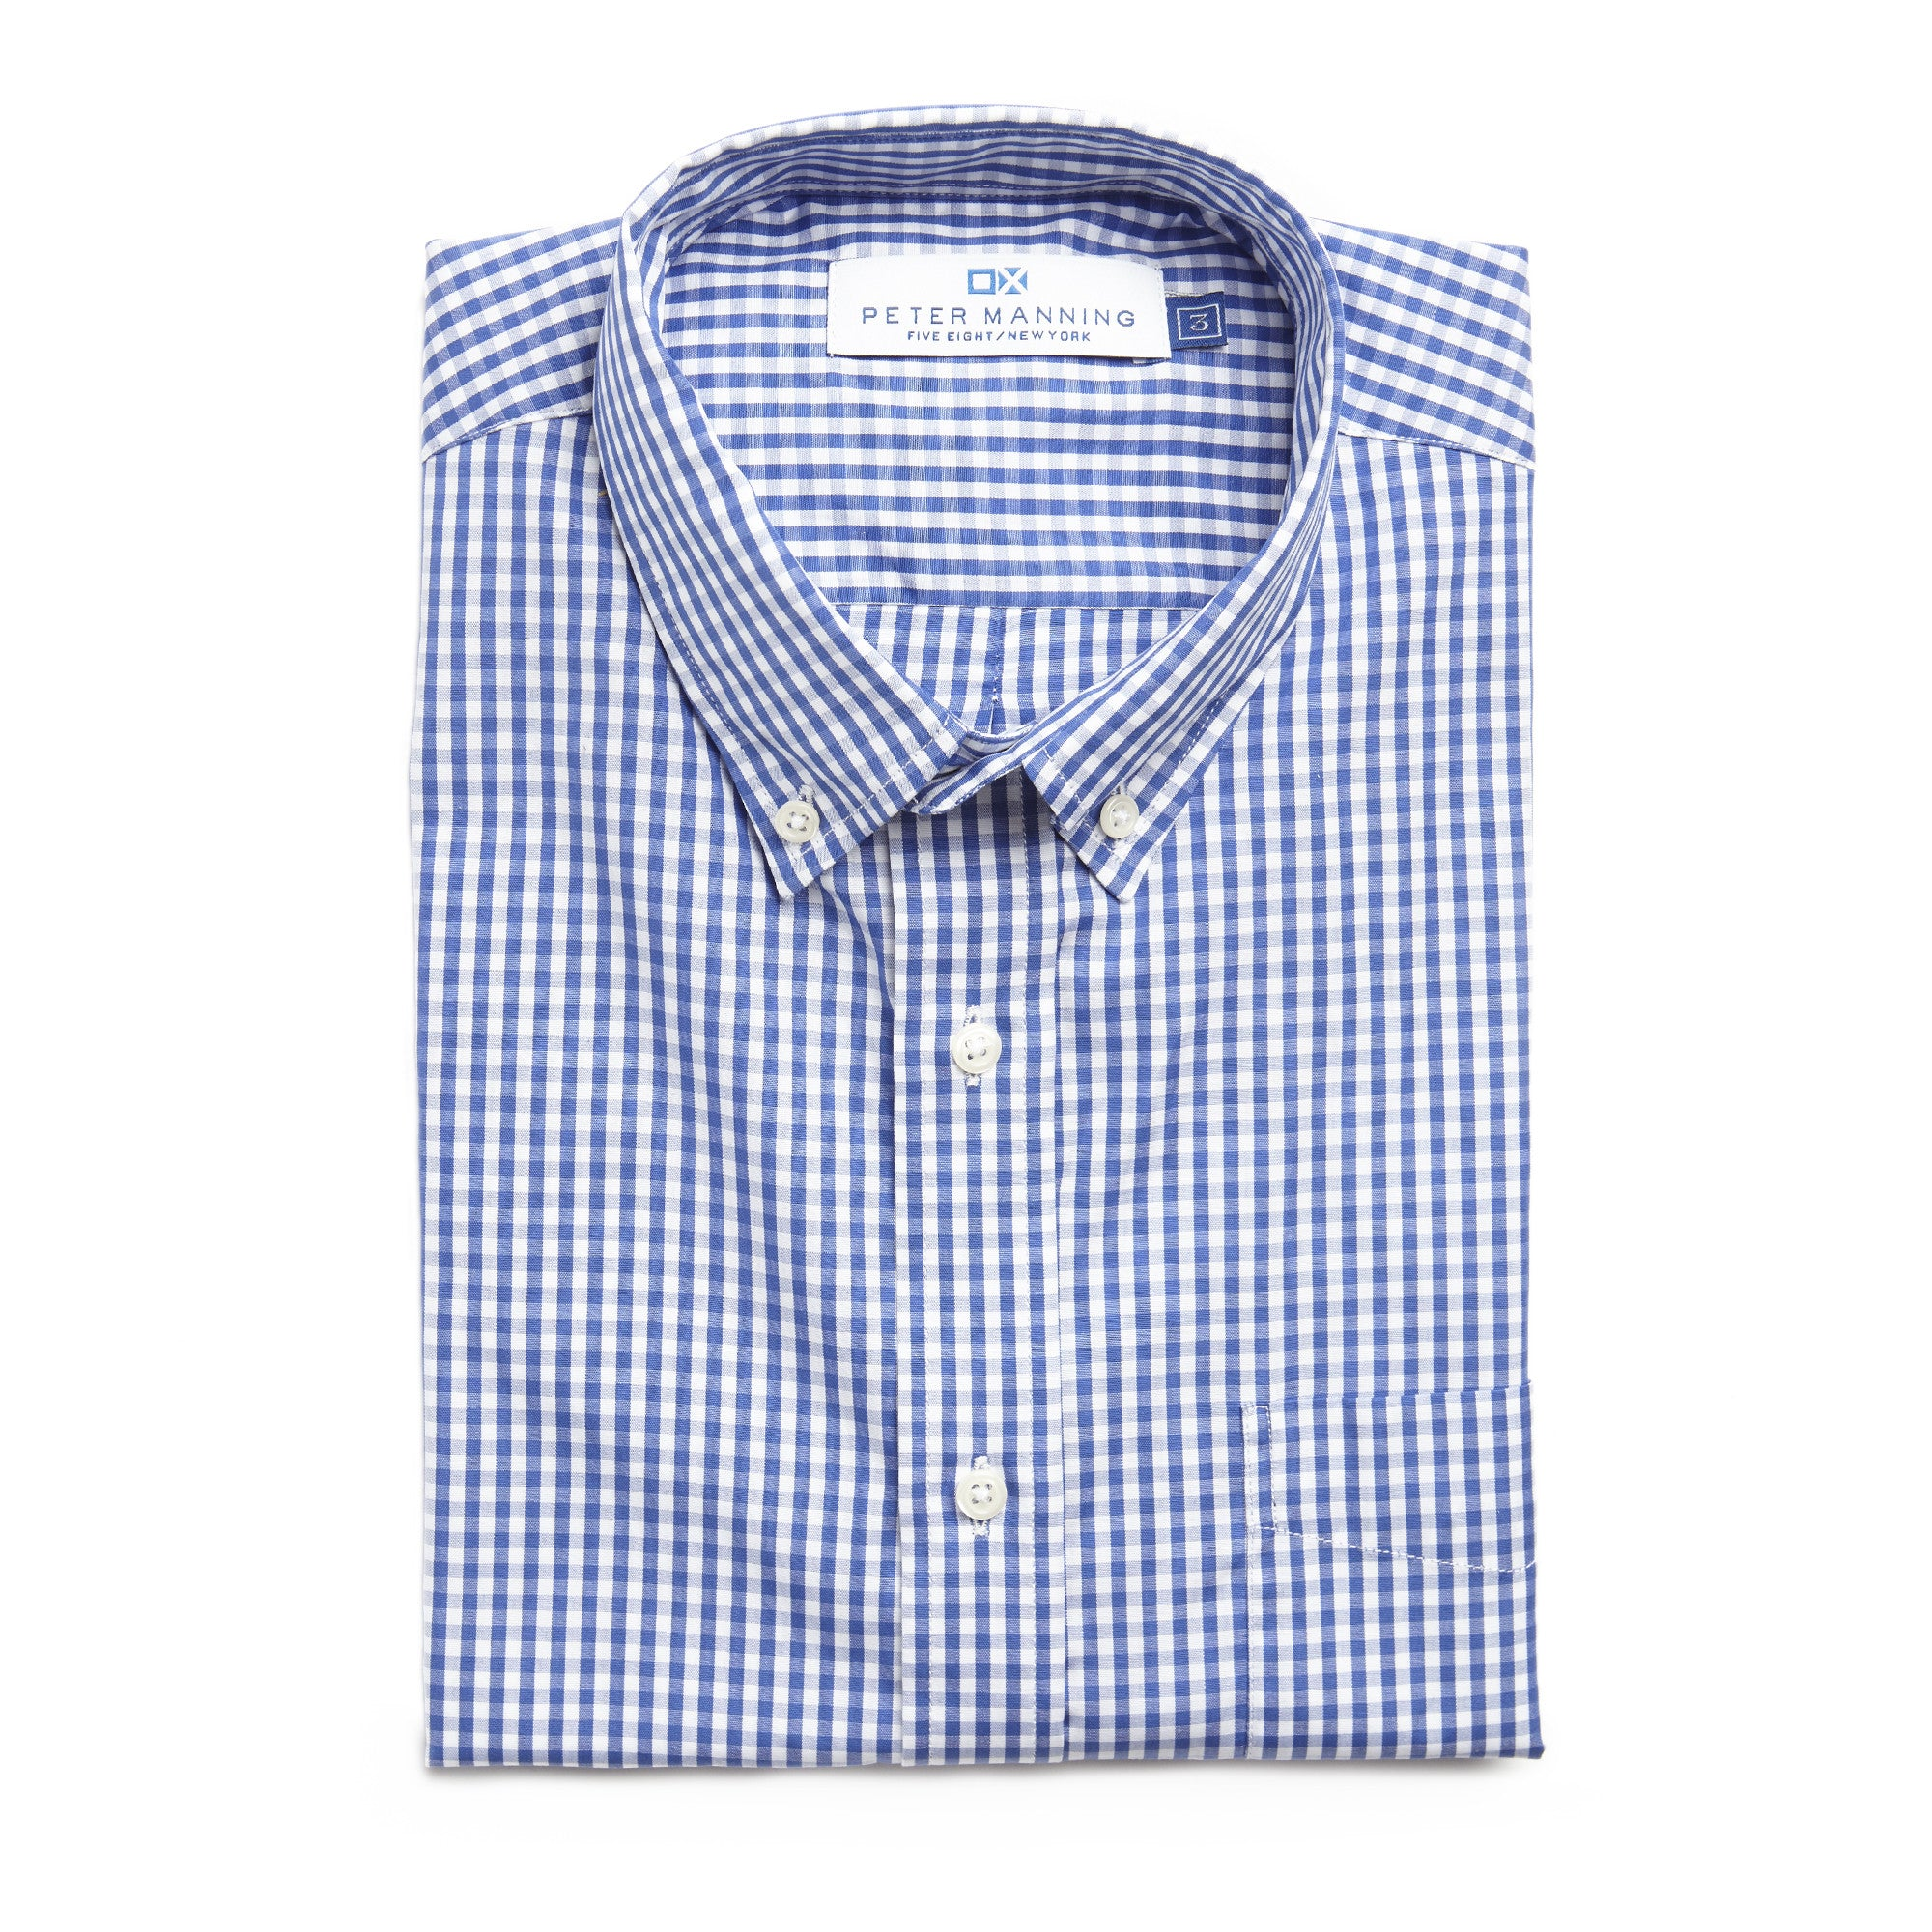 Everyday Shirts Standard Fit - Navy Gingham